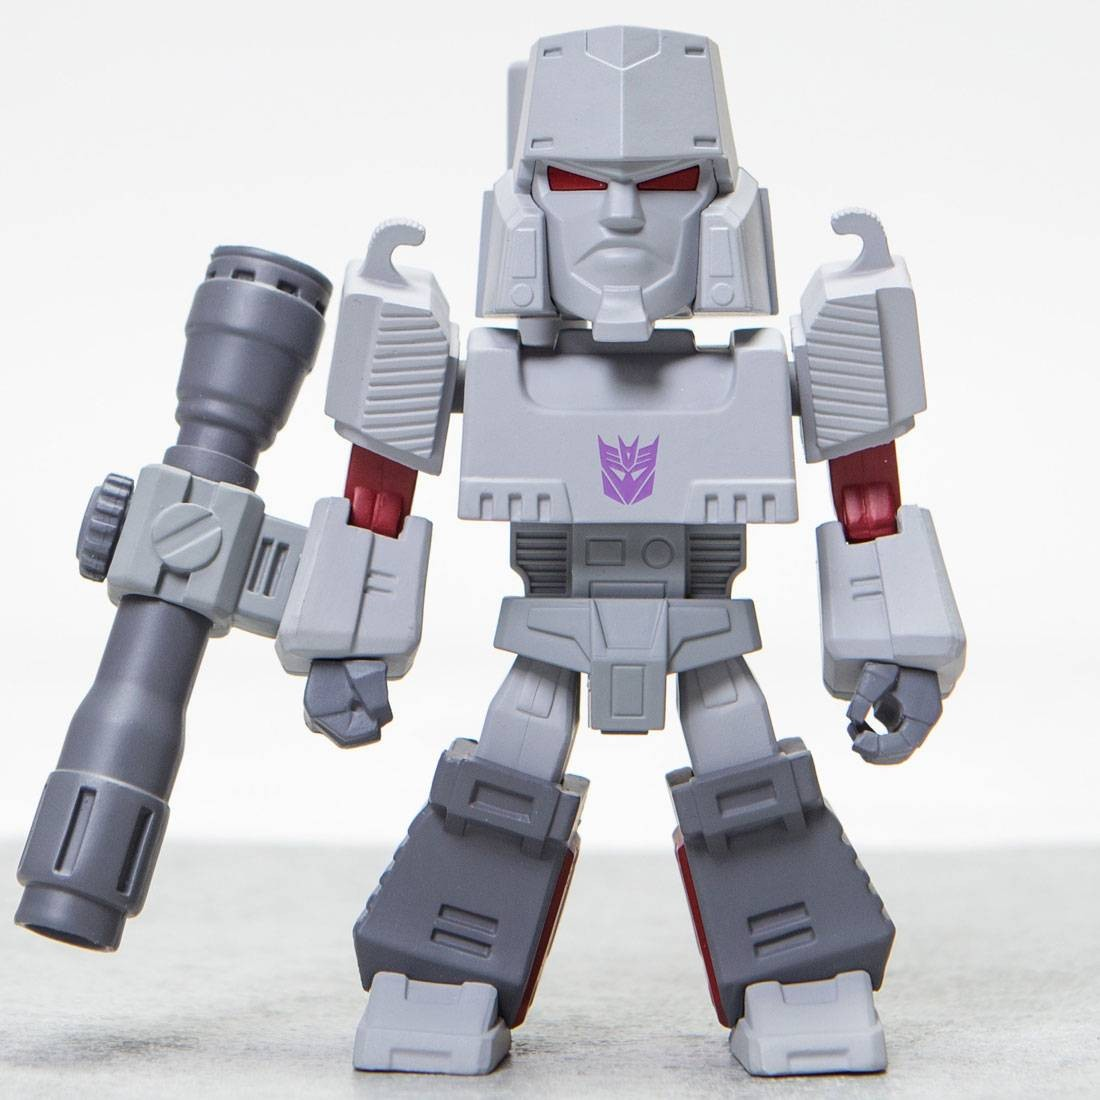 BAIT x Transformers x Switch Collectibles Megatron 4.5 Inch Figure - TV Edition